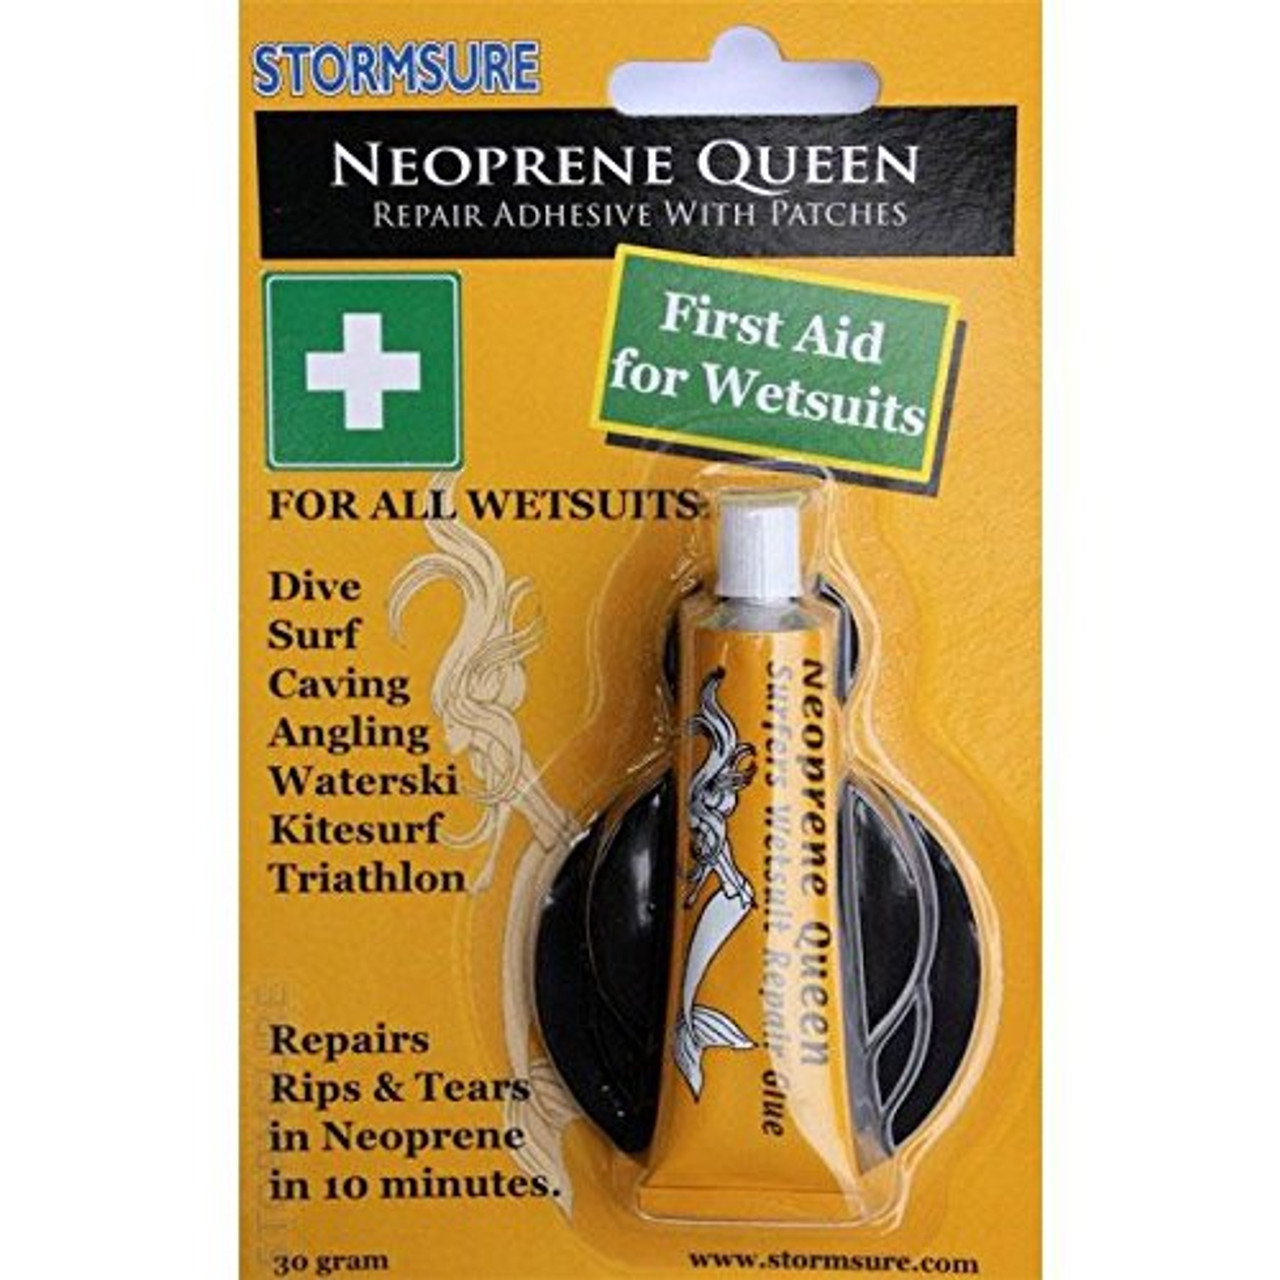 Neoprene Queen Wetsuit Repair Scuba Surf Glue Adhesive with Patches